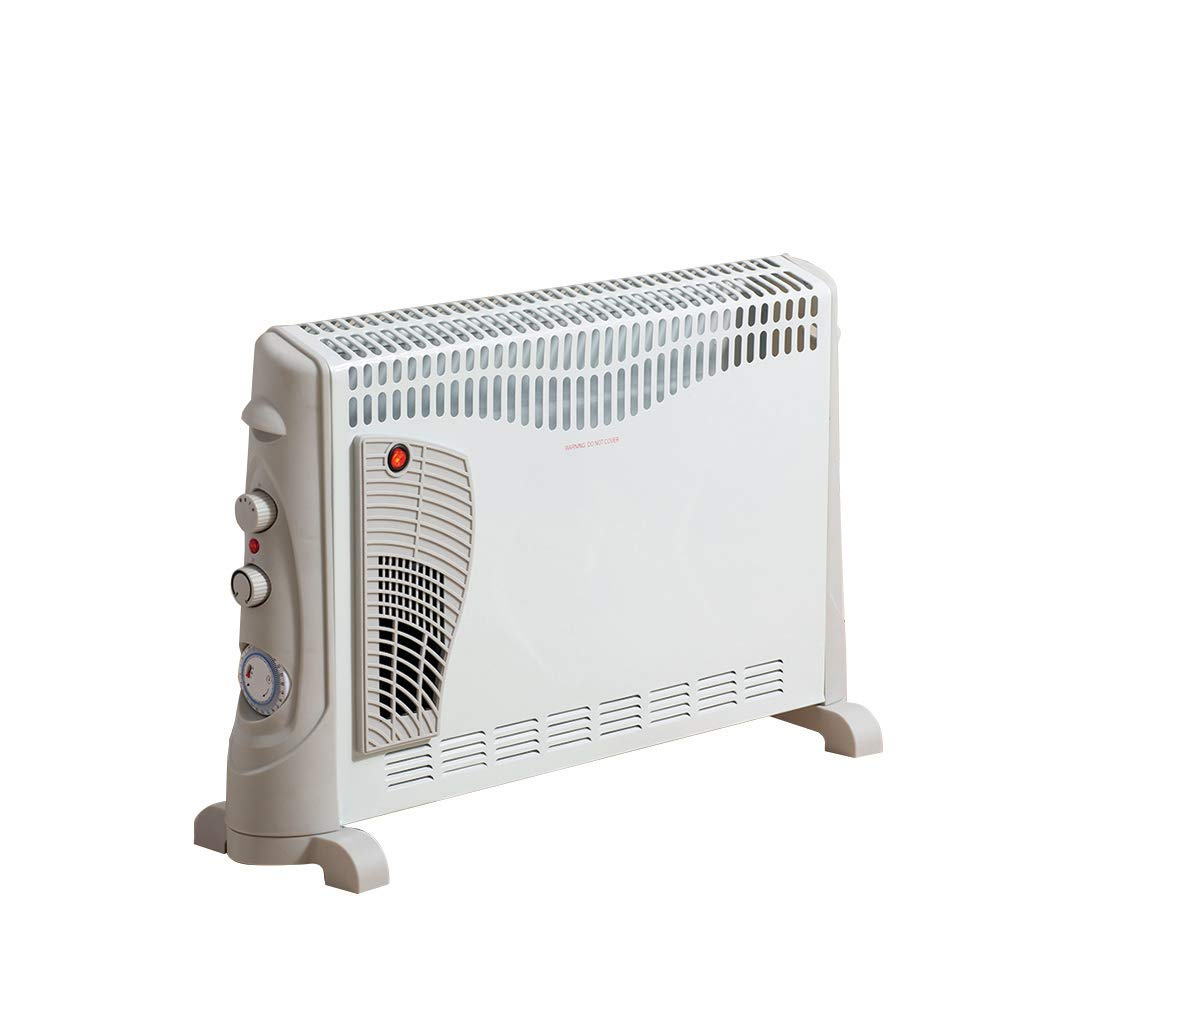 Daewoo 2000W Convector Heater with Turbo Function - 3 Heat Settings, Portable Carry Handle, Adjustable Thermostat & Timer with Fan Setting - White Fine Elements HEA1137